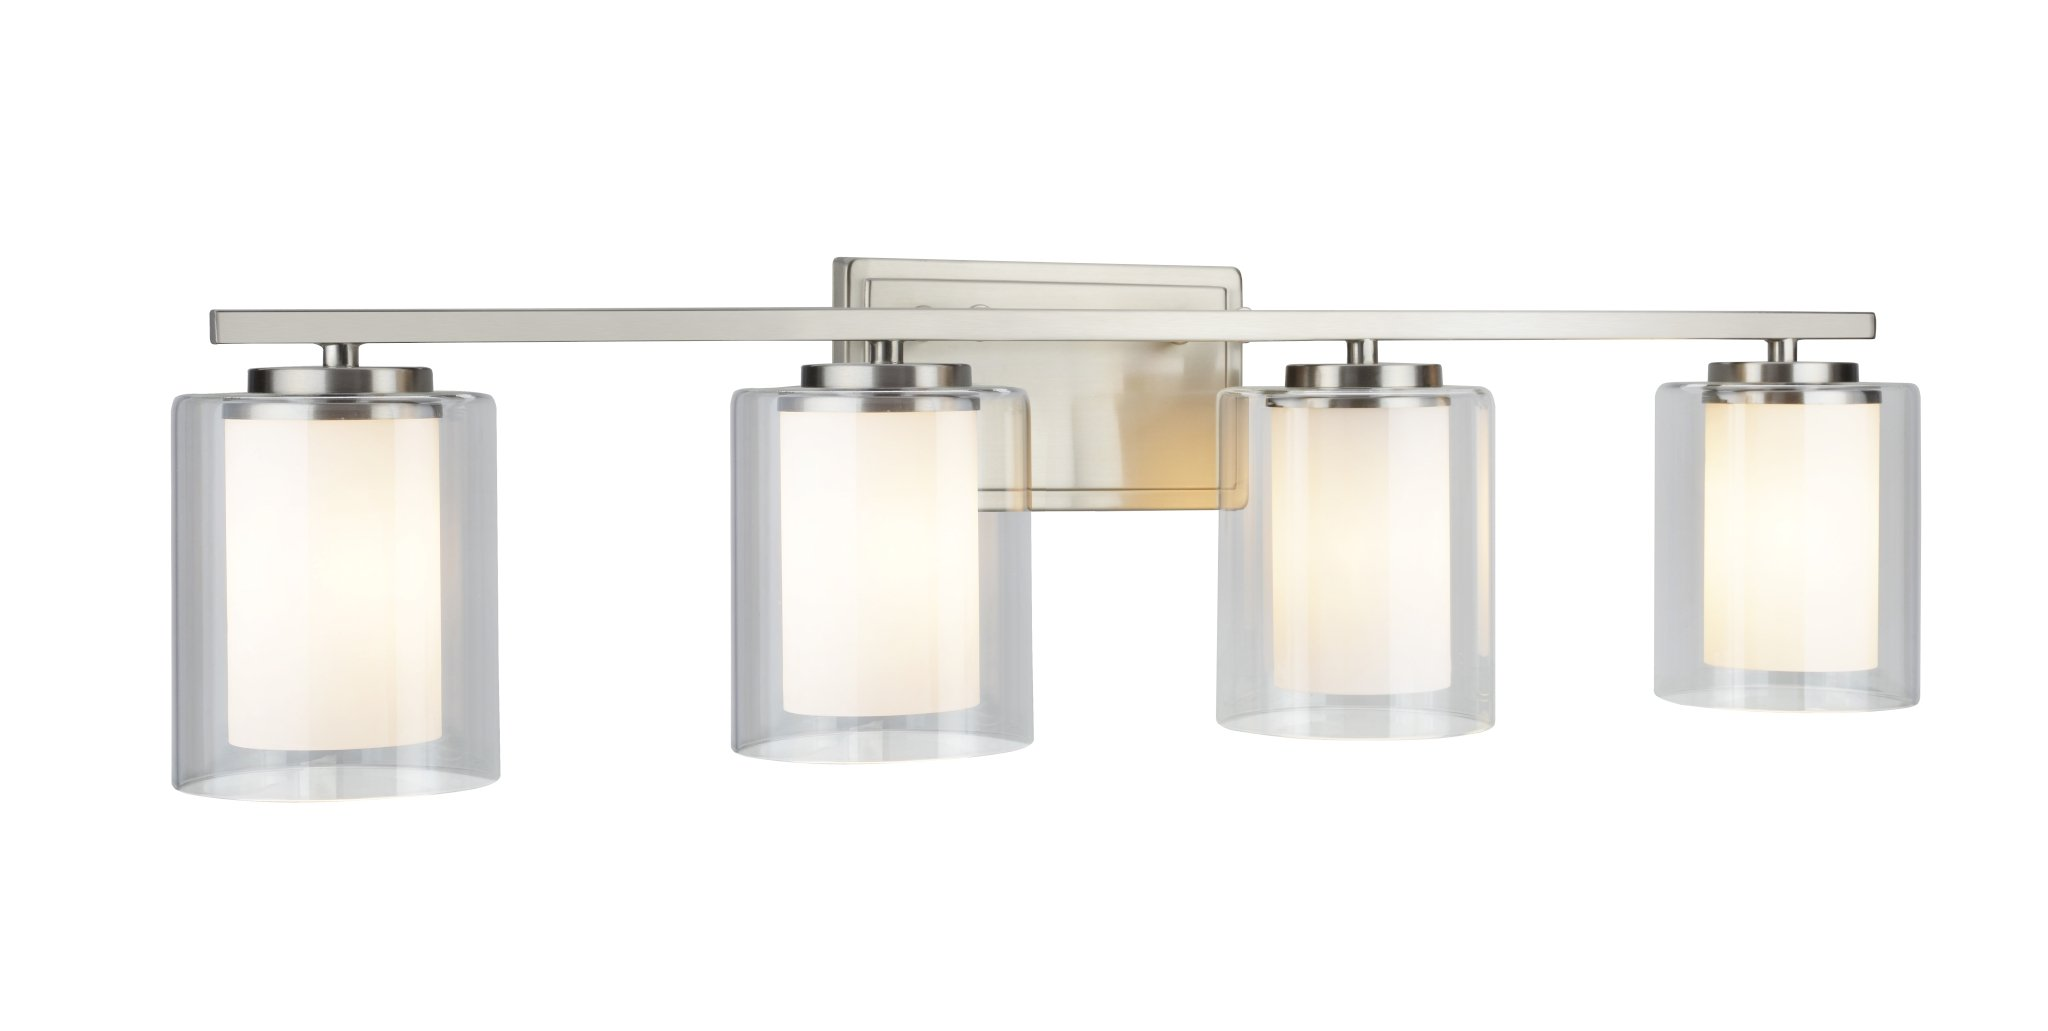 Aspen Creative 62104, Four-Light Metal Bathroom Vanity Wall Light Fixture, 32'' Wide, Transitional Design in Satin Nickel with Clear Glass Shade by Aspen Creative (Image #4)